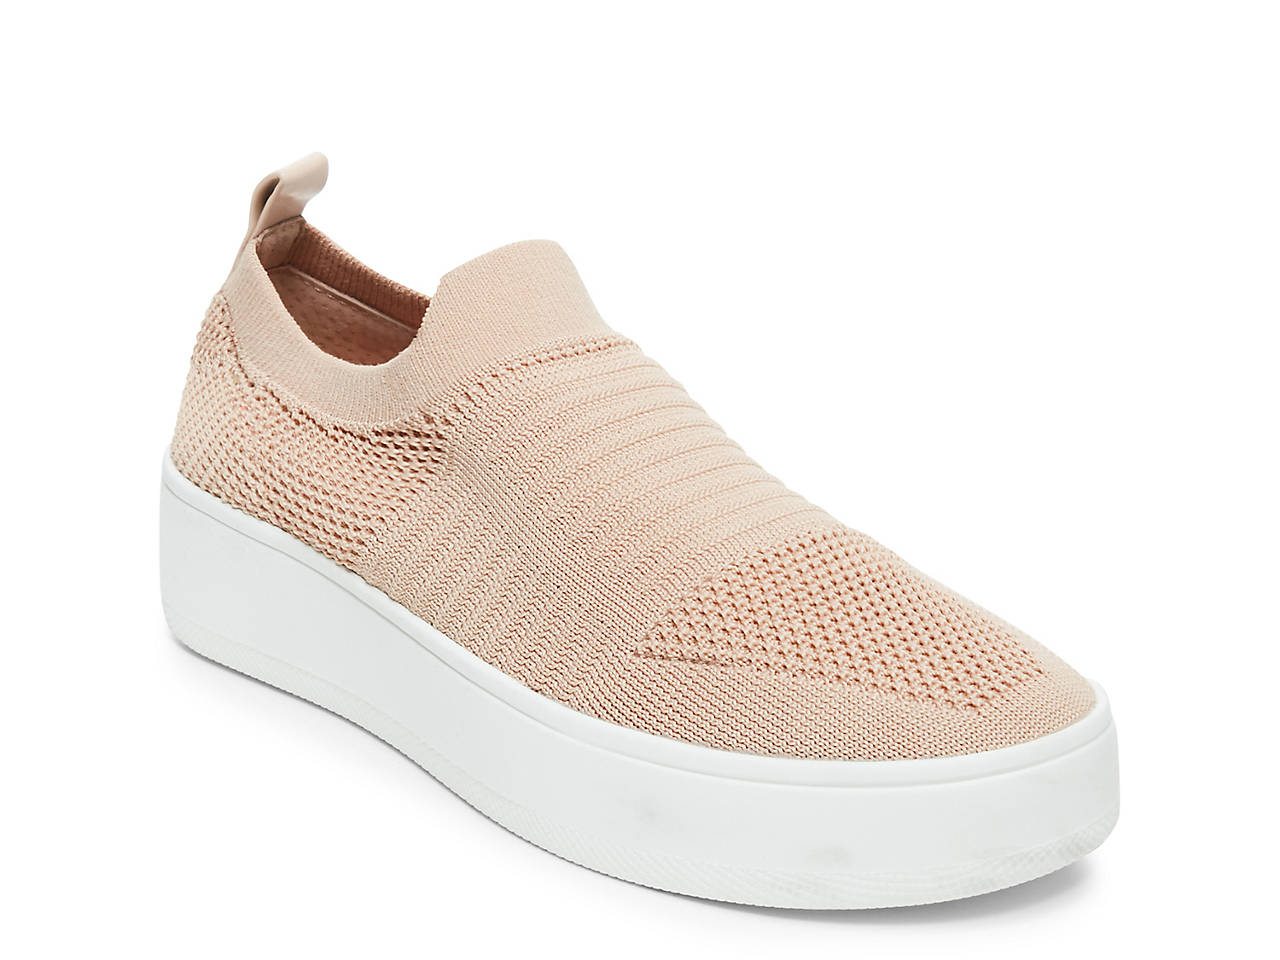 6757d22e580 Steve Madden Beale Platform Slip-On Sneaker Women s Shoes